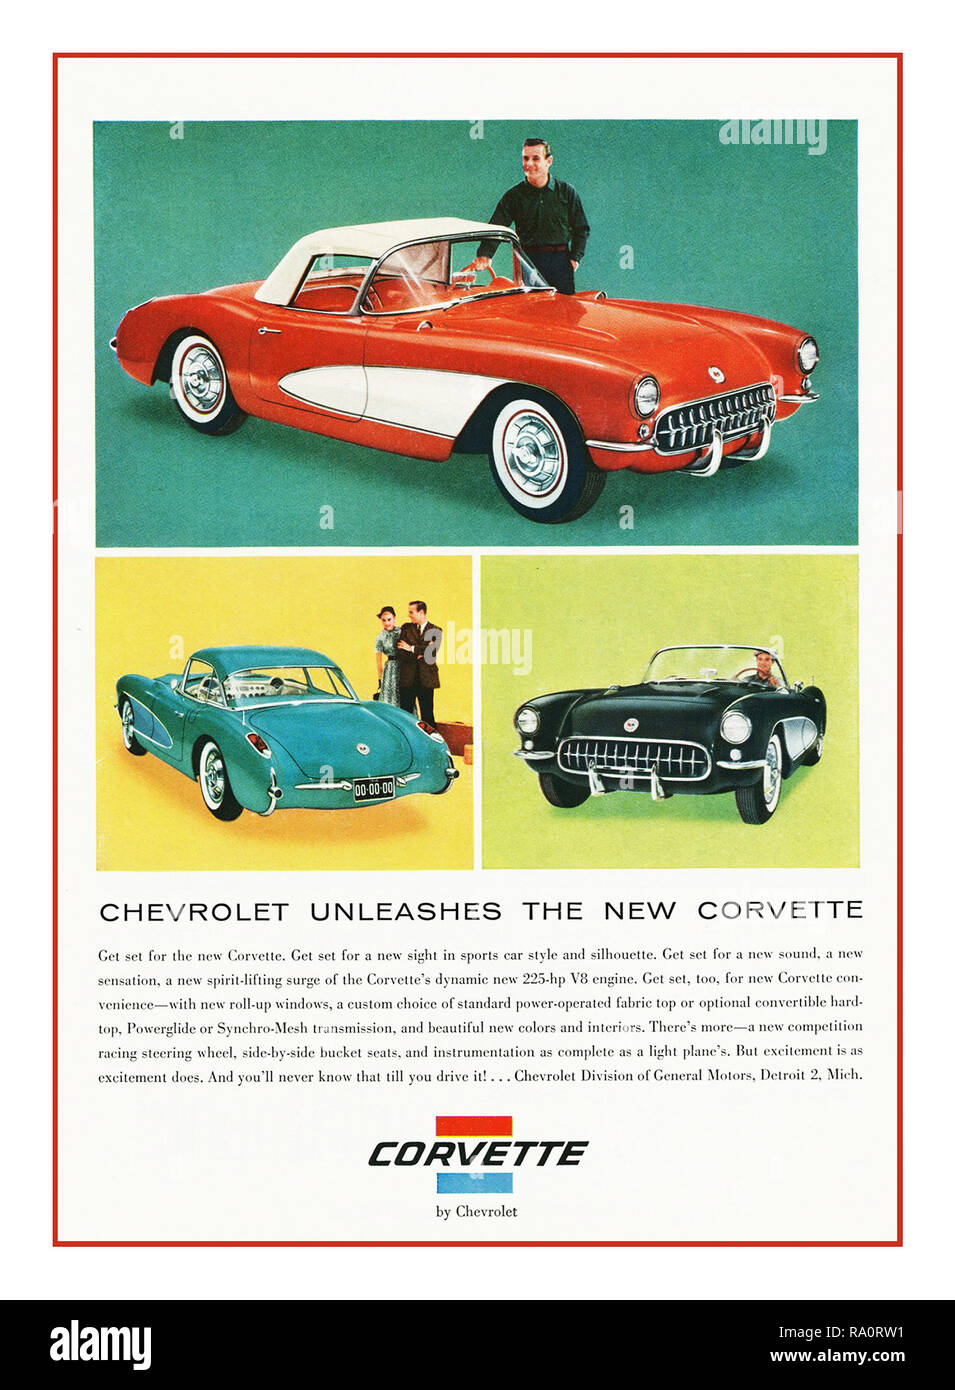 """CORVETTE 1960's Vintage American Automobile advertisement 1961 Chevrolet Corvette Advertisement """" Chevrolet Unleashes The New Corvette""""  Iconic Americana Automobile Sports Hard/Soft top touring 2+2 seater car America Muscle Car - Stock Image"""